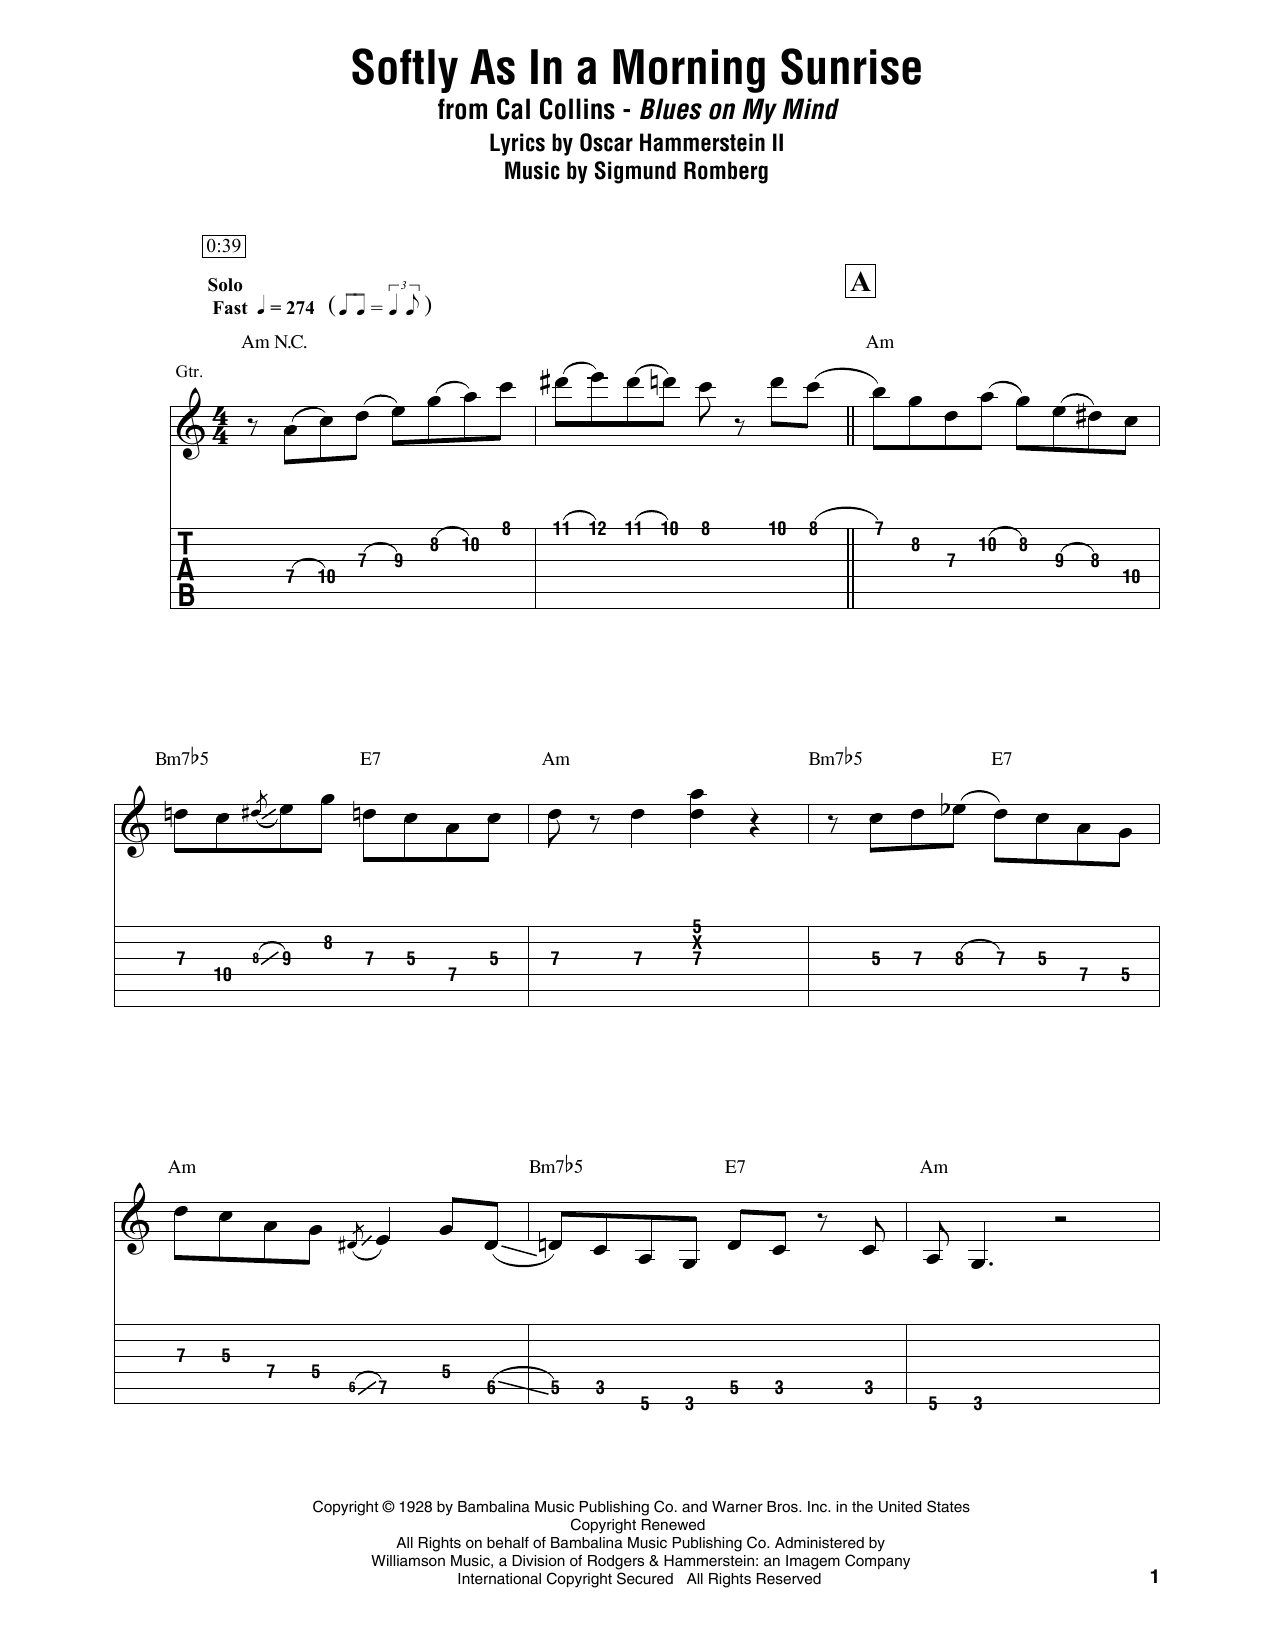 Download Cal Collins 'Softly As In A Morning Sunrise' Digital Sheet Music Notes & Chords and start playing in minutes